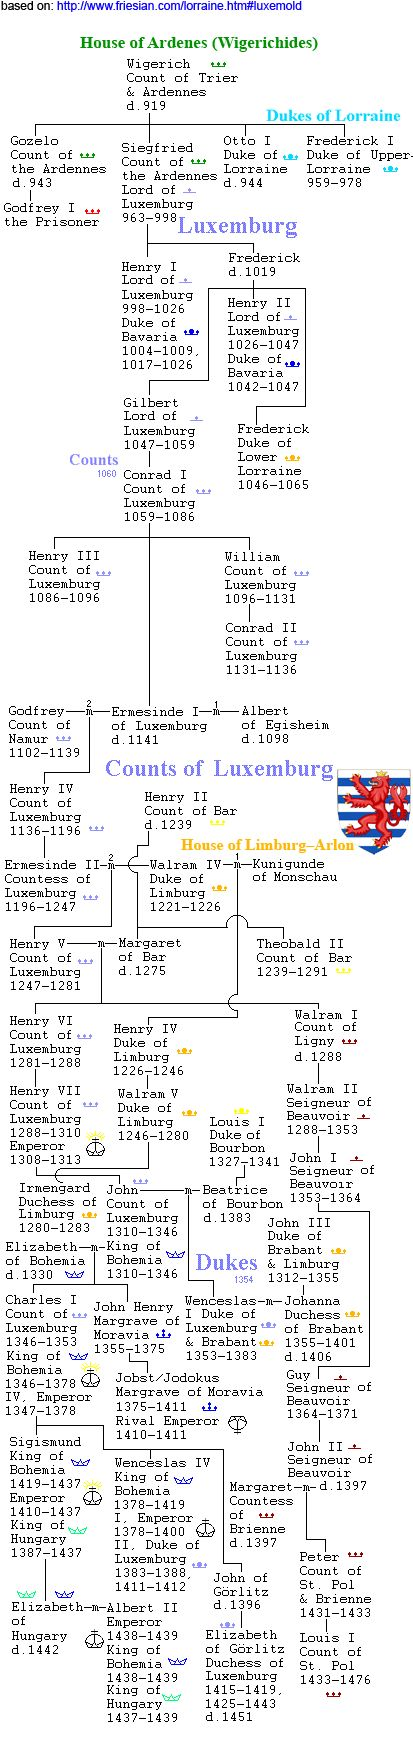 [Low Countries] County & Duchy of Luxemburg and House of Ardenes (Wigerichides) http://www.friesian.com/lorraine.htm#luxemold